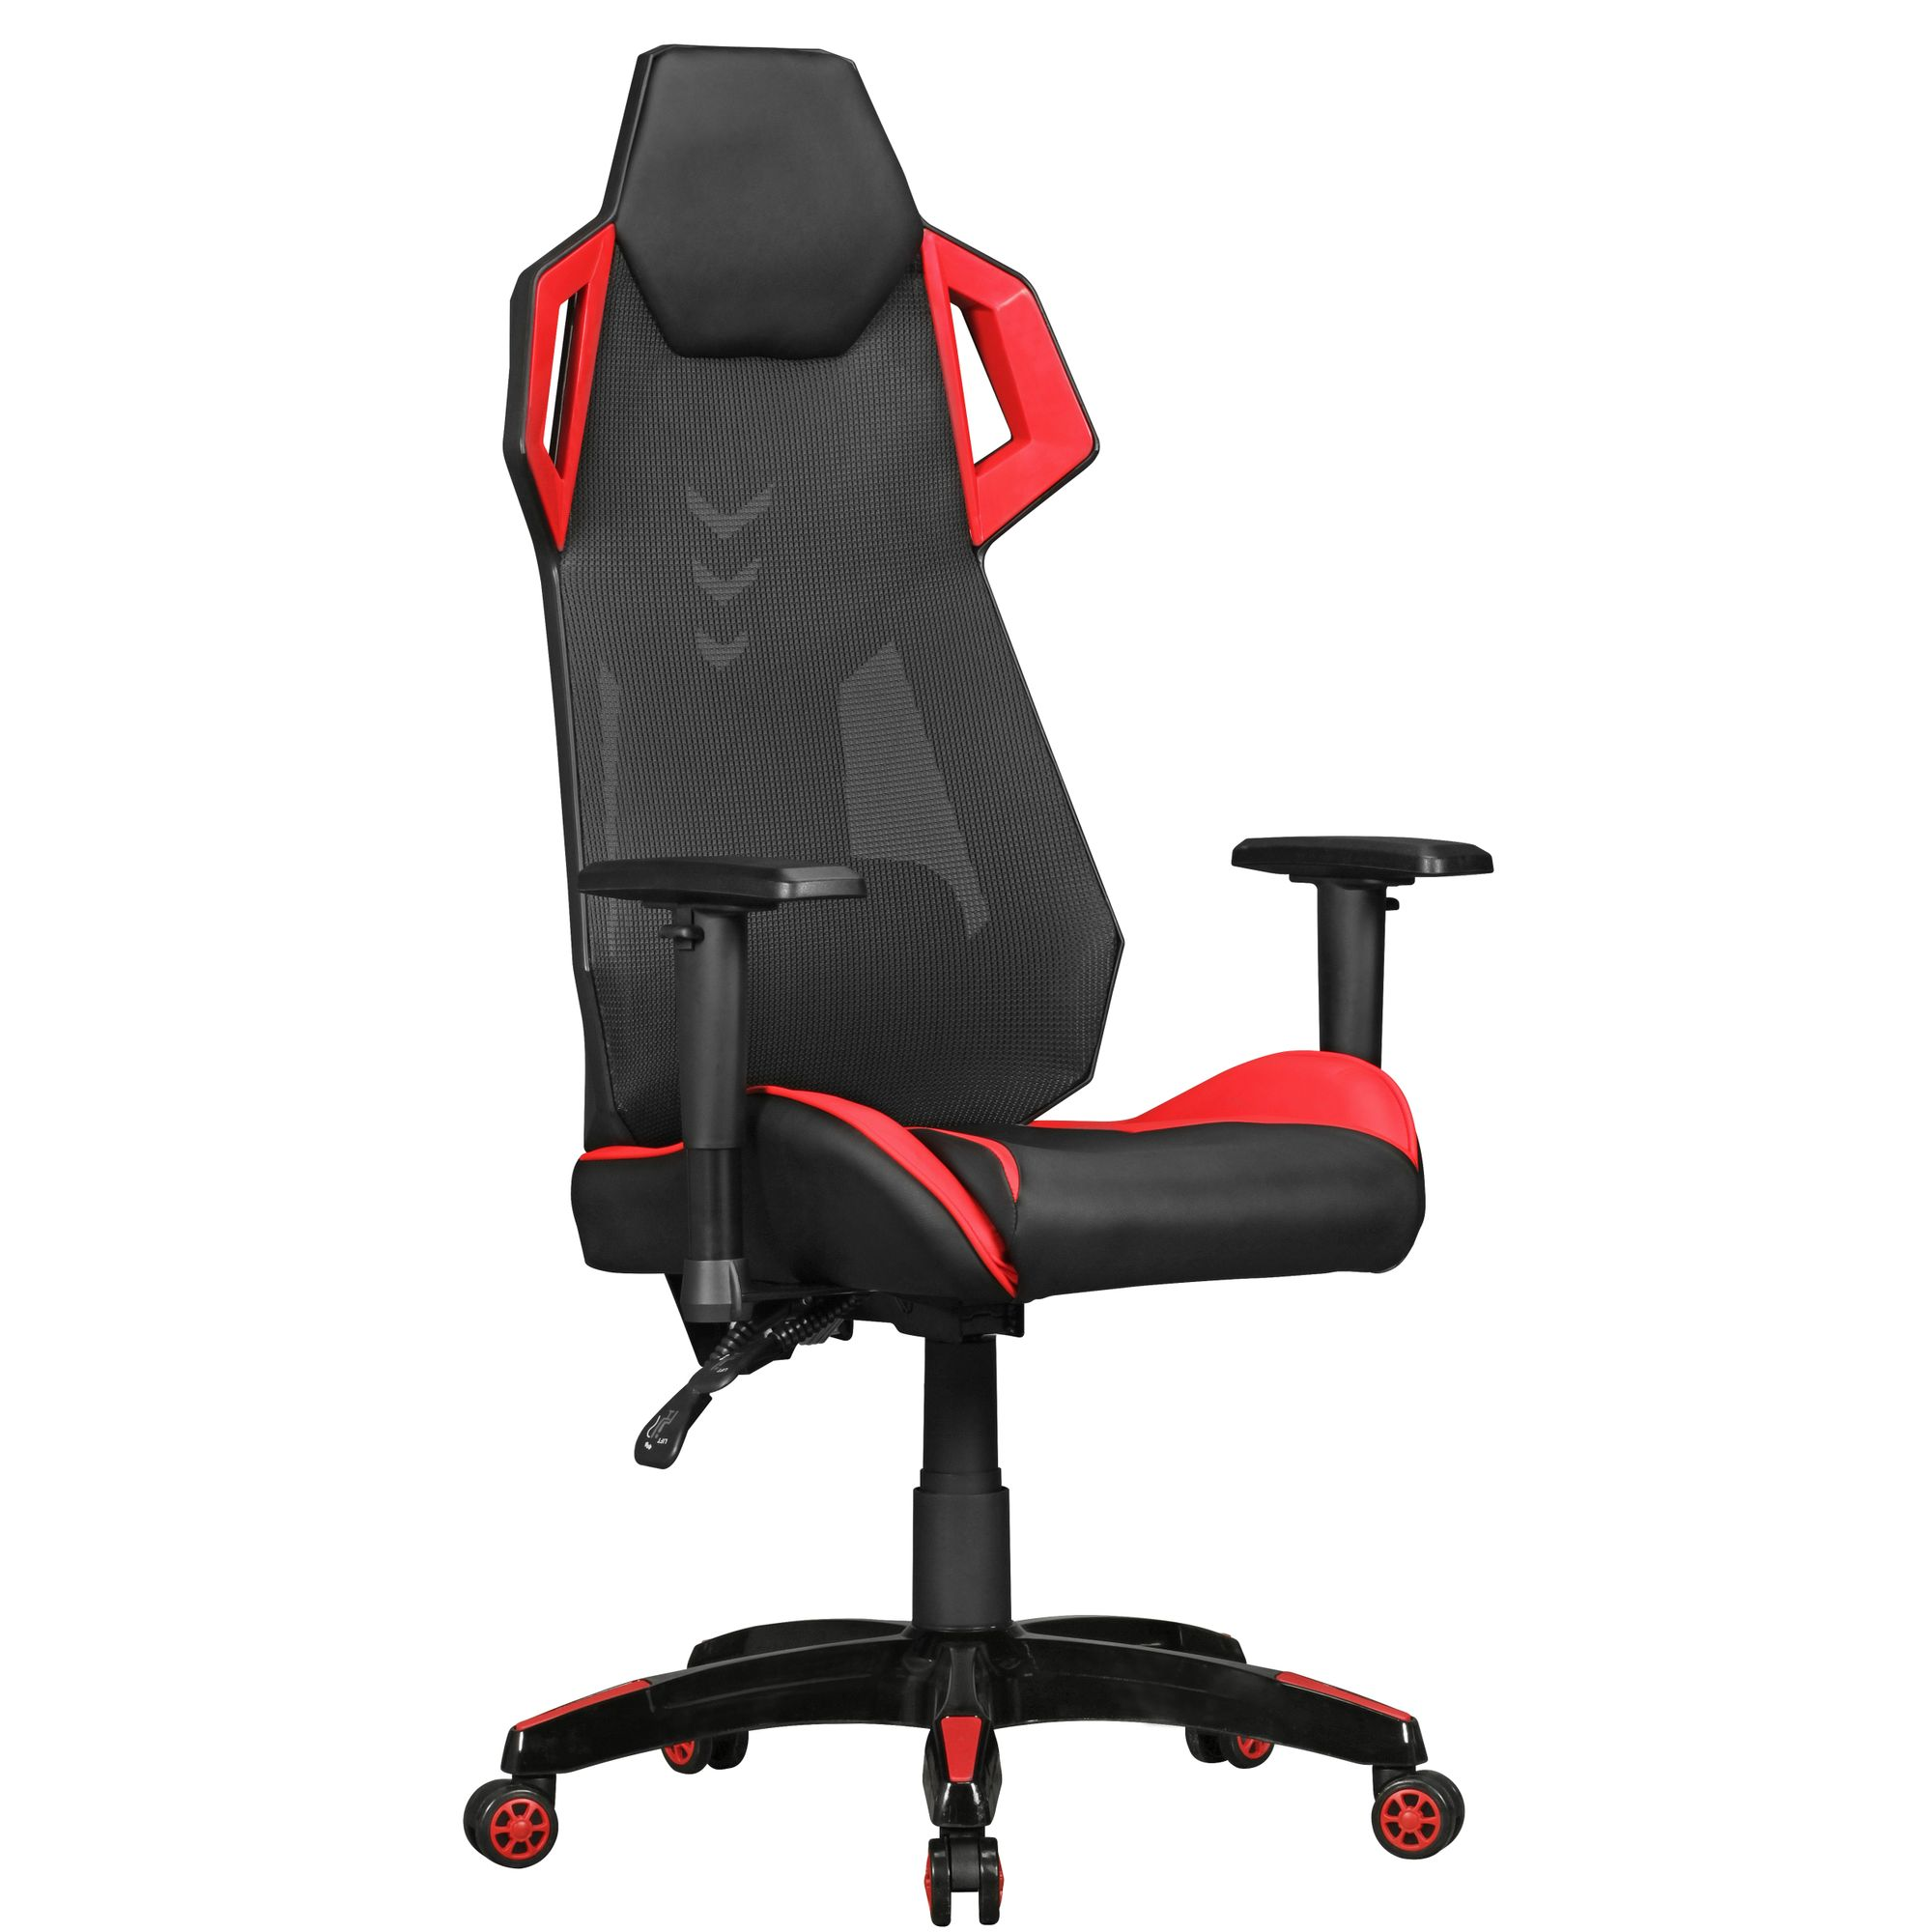 Amstyle Chefsessel Race Amstyle Gamepad Gaming Chair Aus Kunstleder Mesh In